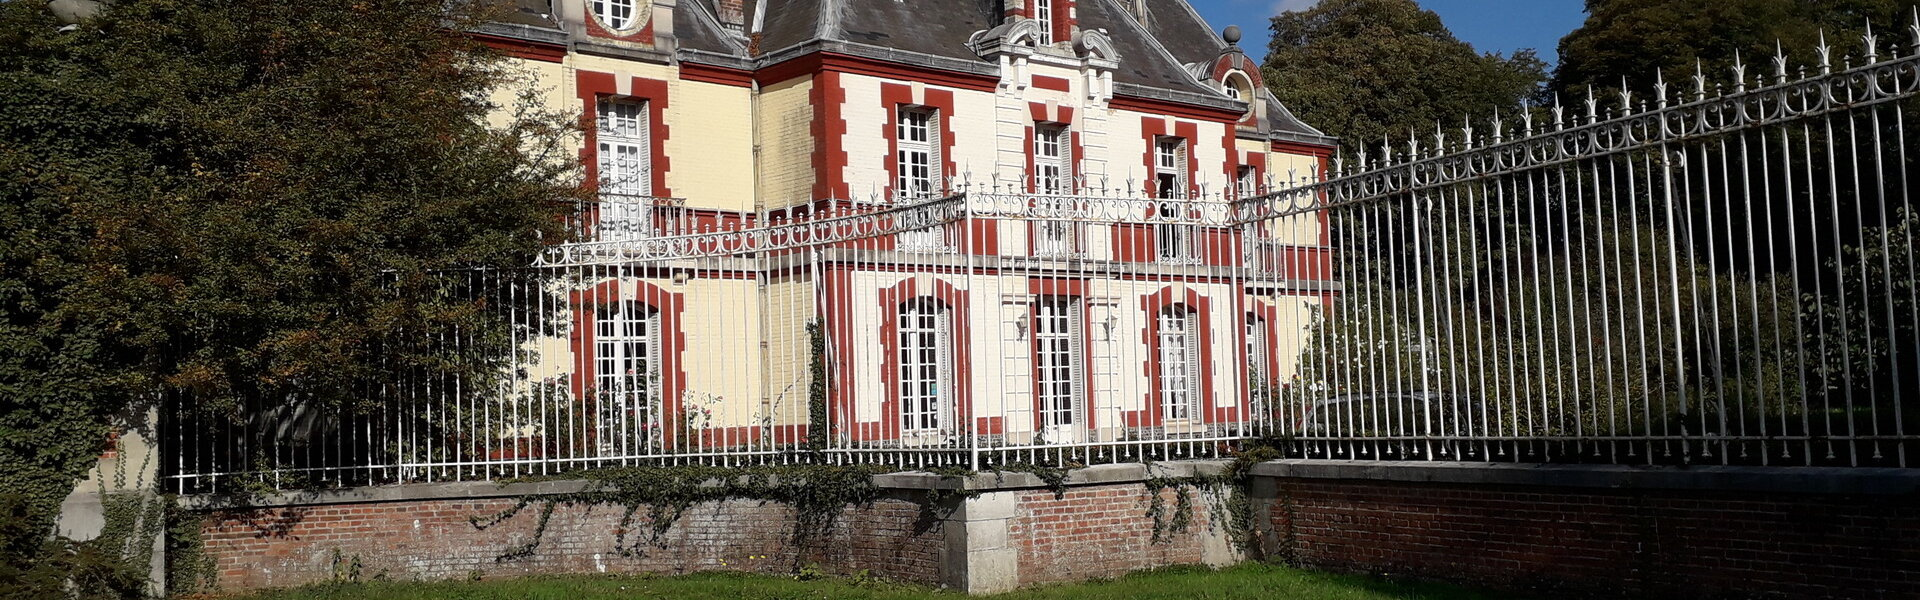 le saint patron du village de sailly flibeaucourt